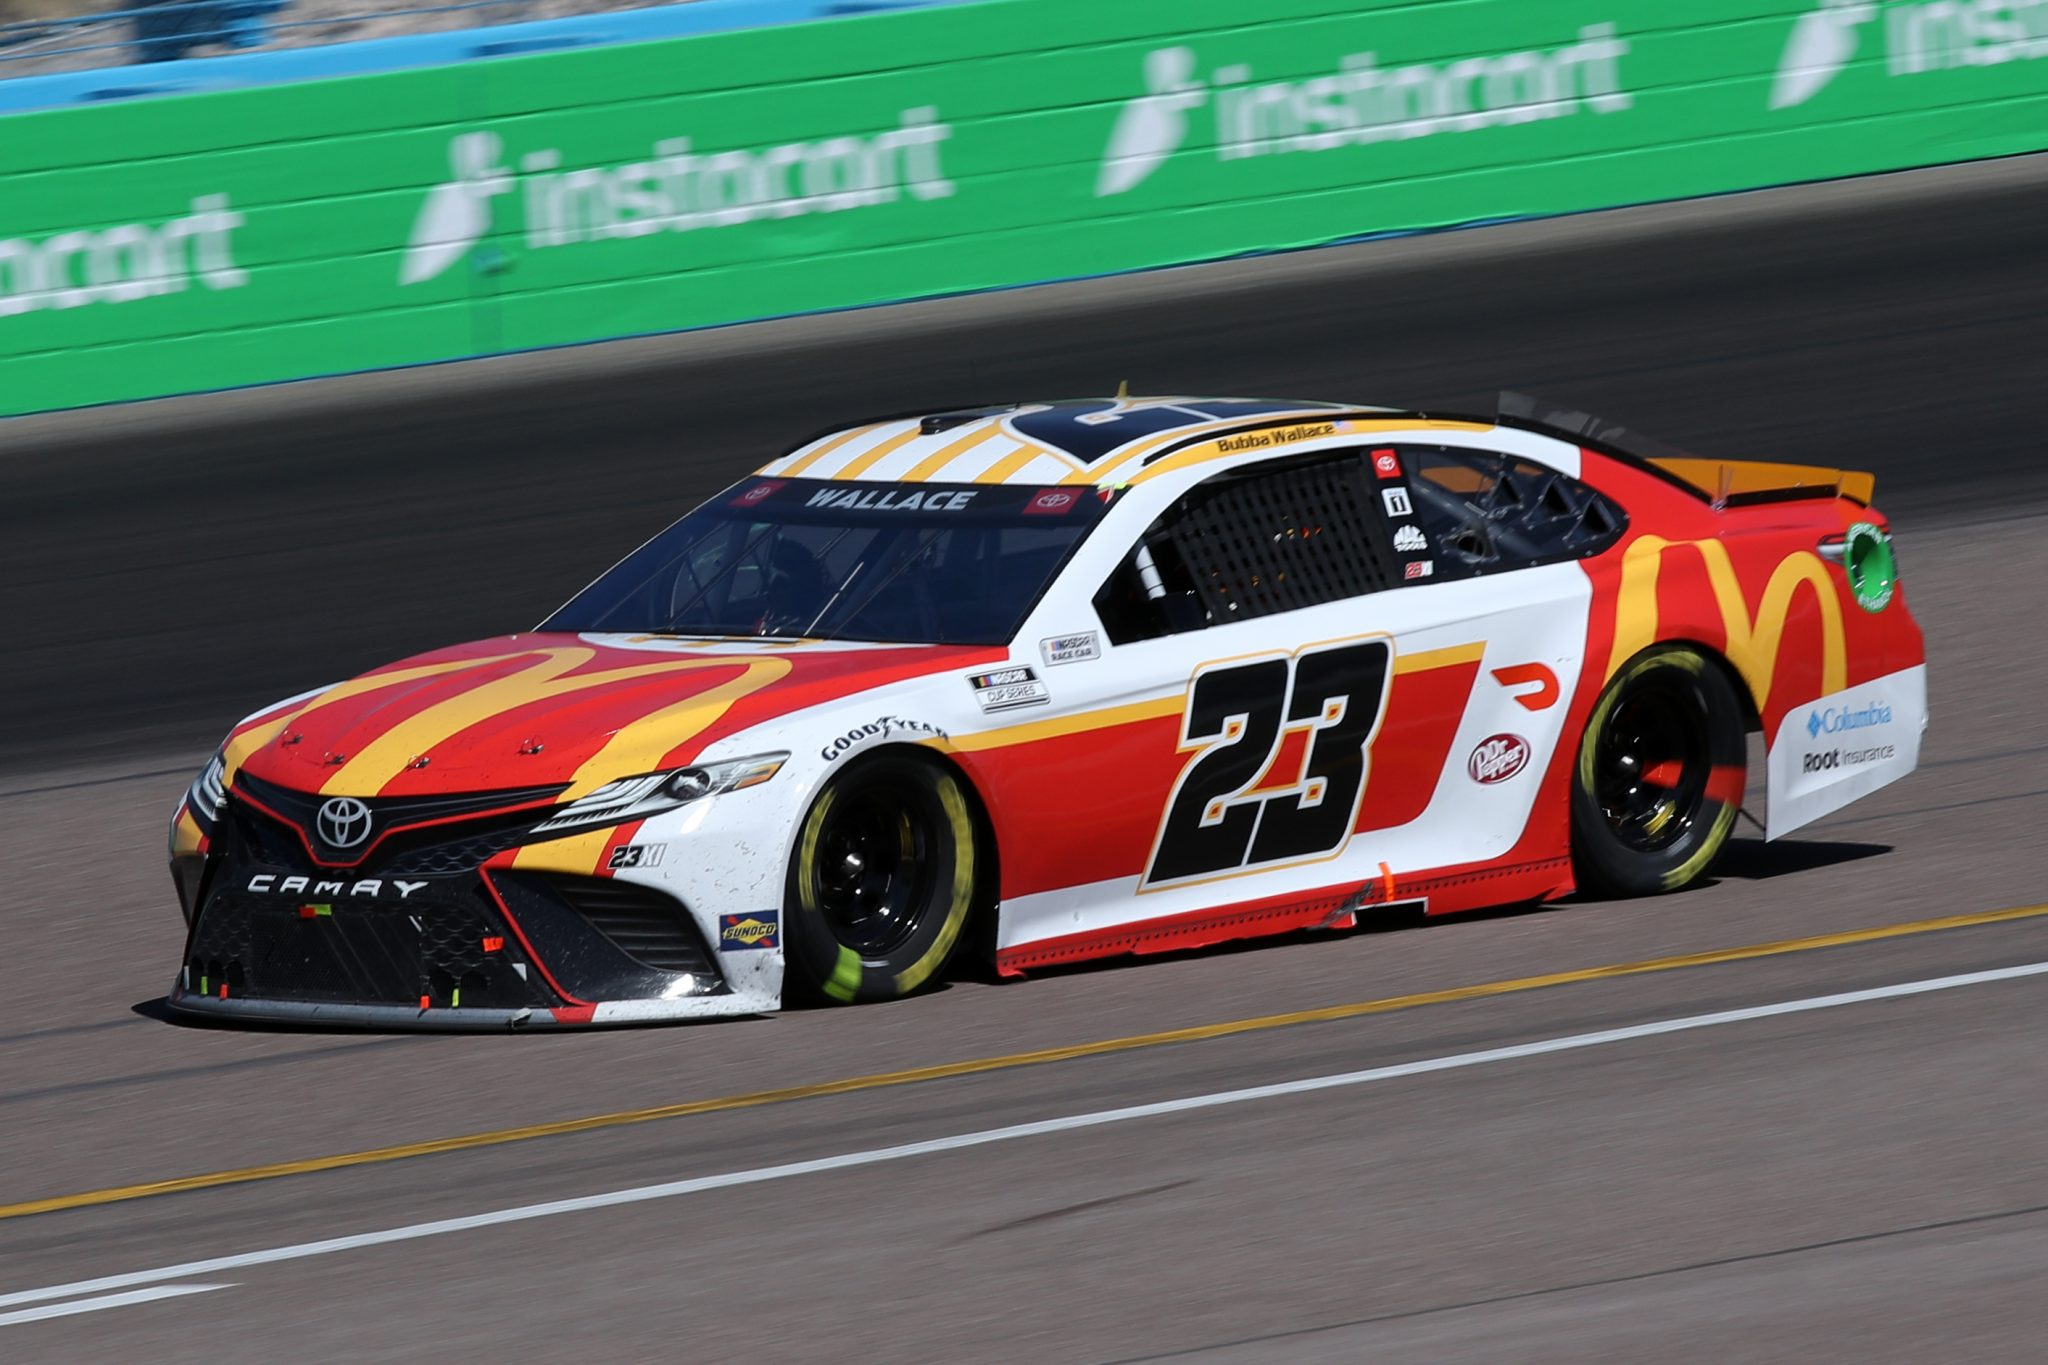 AVONDALE, ARIZONA - MARCH 14: Bubba Wallace, driver of the #23 McDonalds Toyota, drives during the NASCAR Cup Series Instacart 500 at Phoenix Raceway on March 14, 2021 in Avondale, Arizona. (Photo by Sean Gardner/Getty Images) | Getty Images